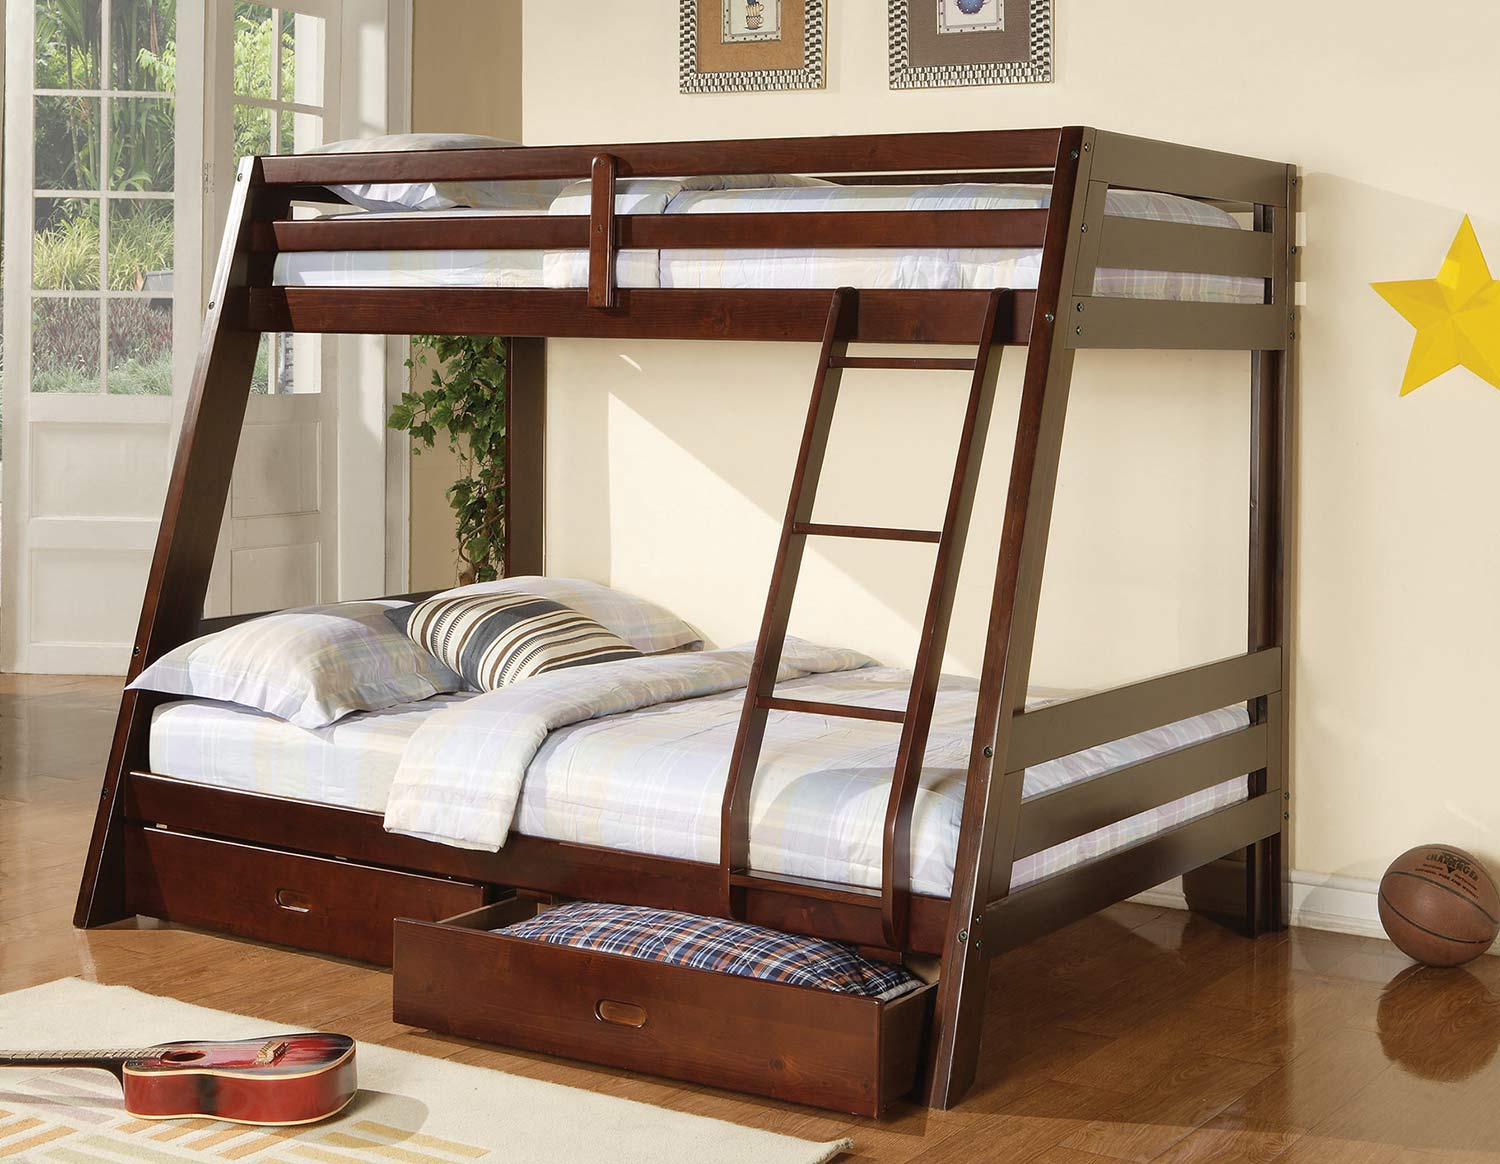 Coaster Hawkins Twin/Twin Size Bunk Bed - Brown